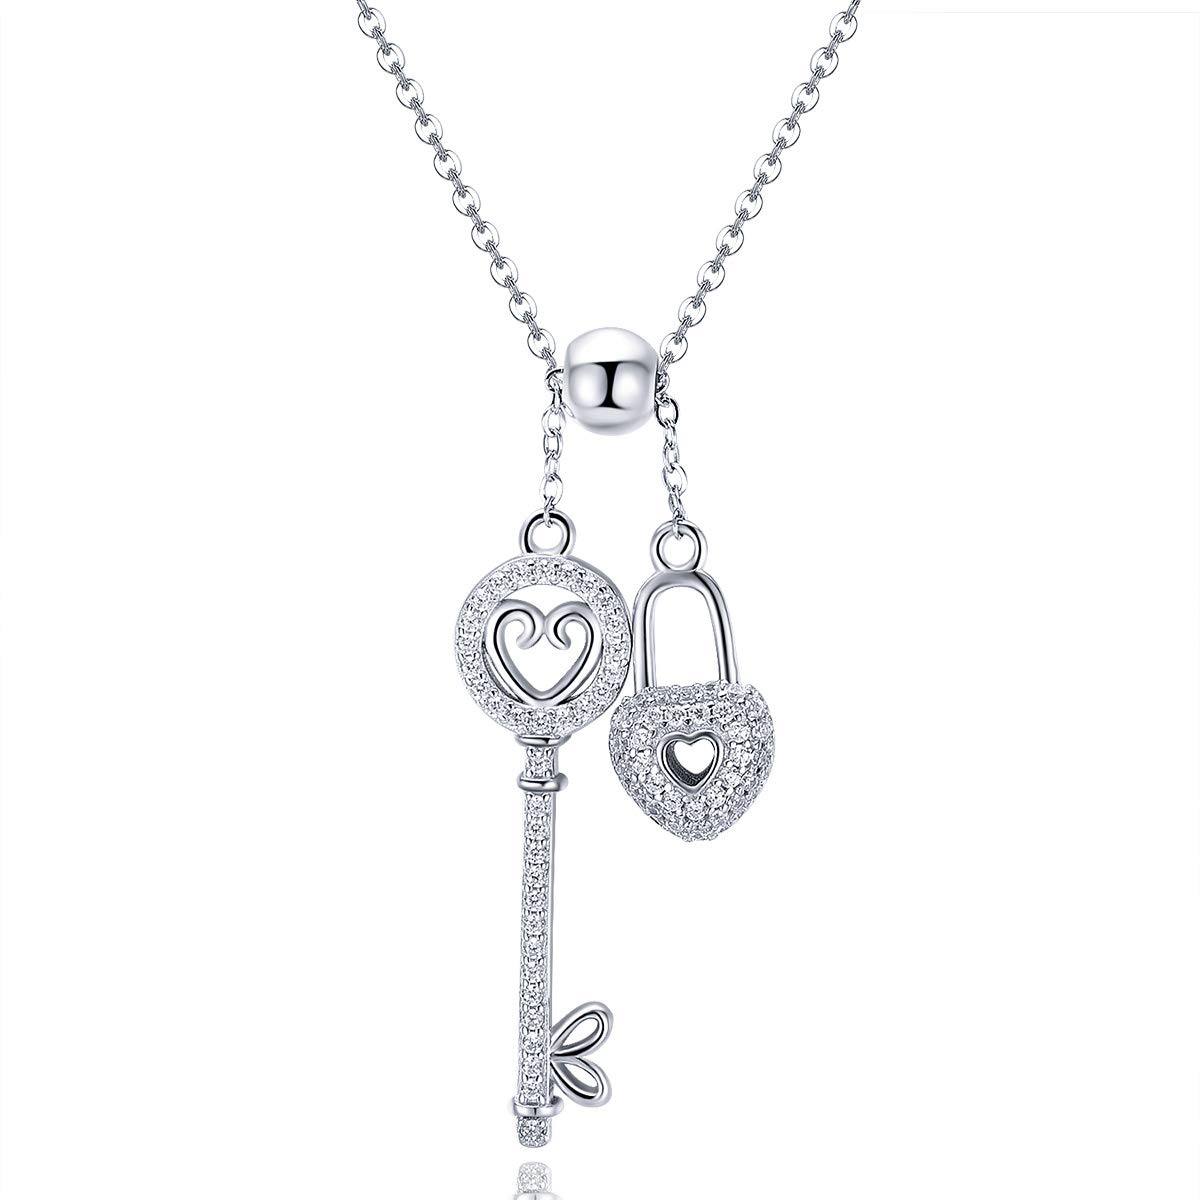 c5d60ccaad LYZYY Women's Wedding 925 Sterling Silver Key Lock Couple Necklace  Exquisite Pendant Cubic Zirconia Women's Jewelry for Wife Or Girlfriend's  Exquisite ...